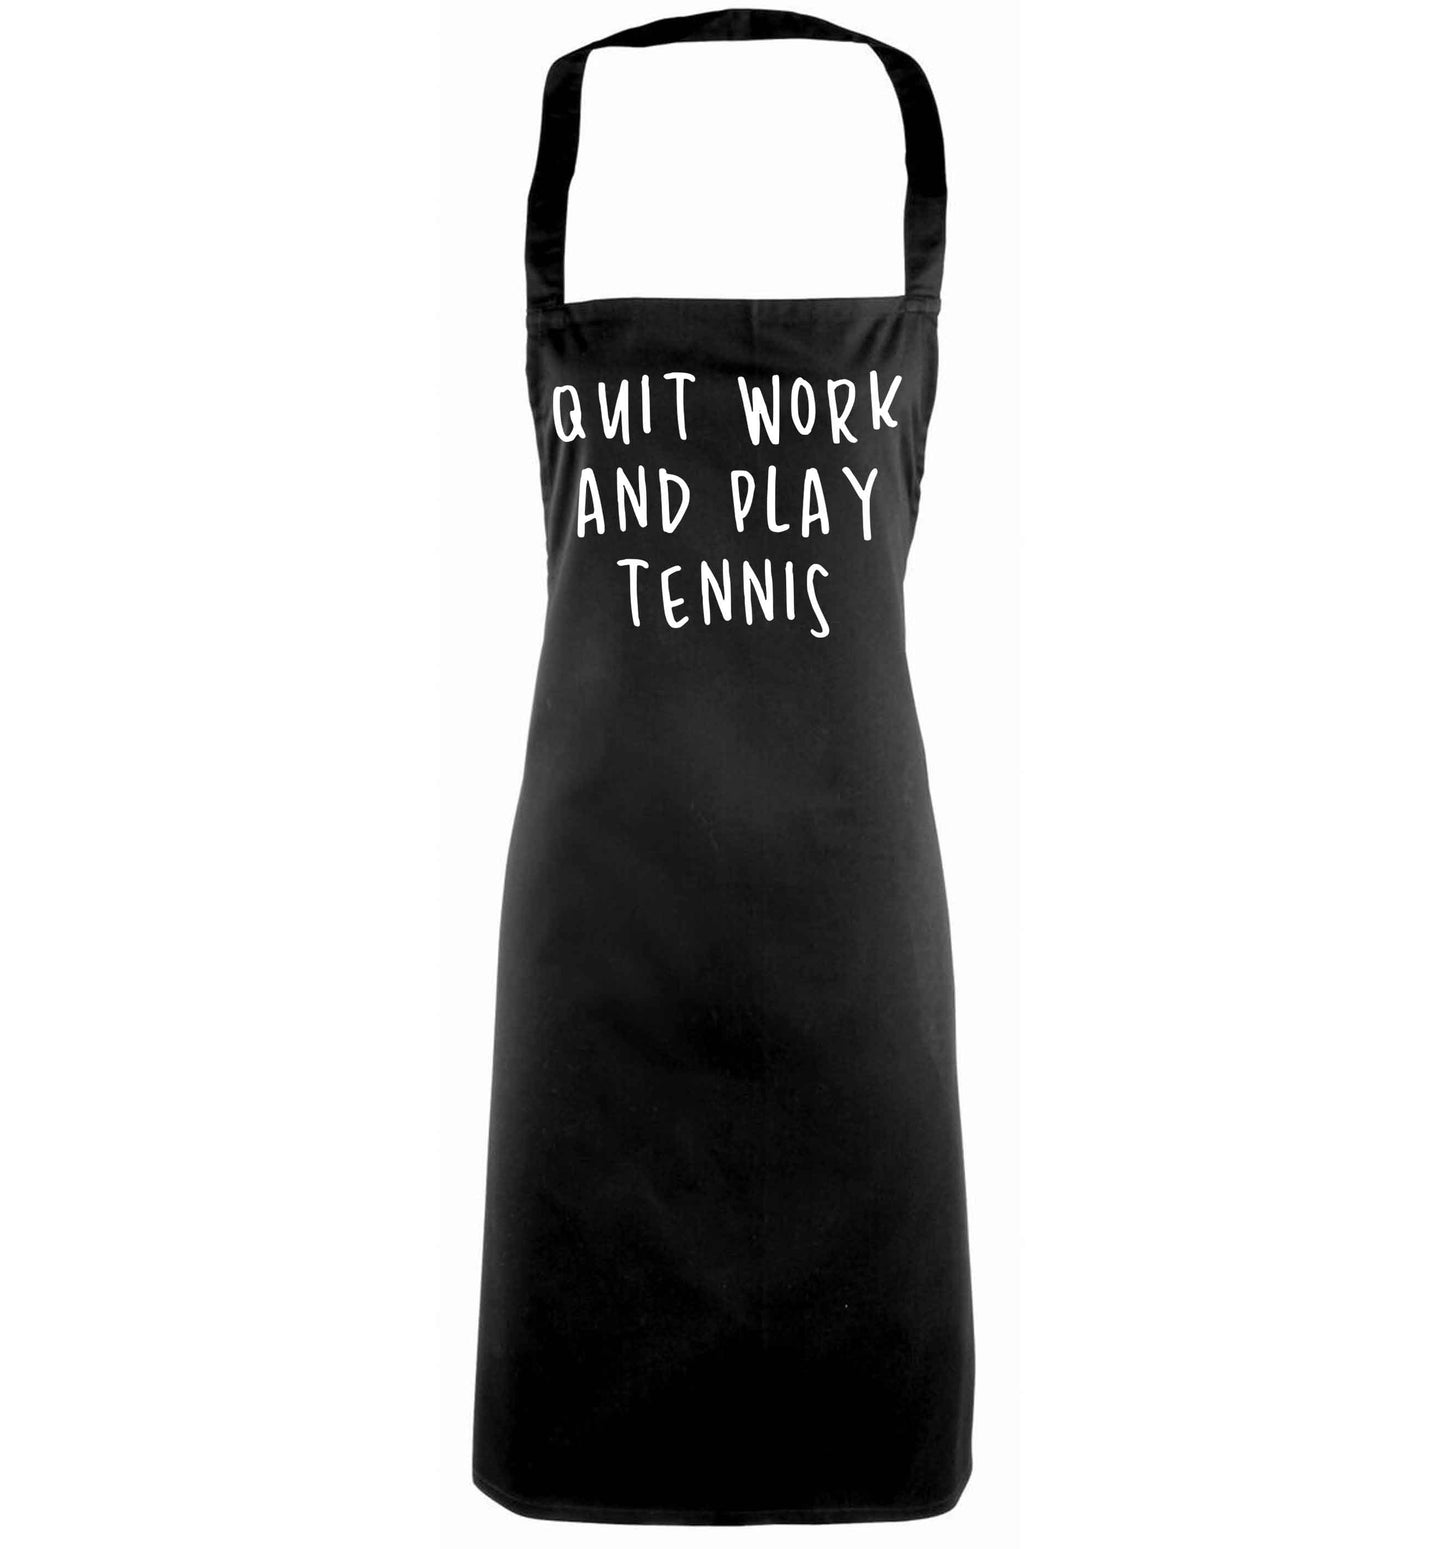 Quit work and play tennis black apron